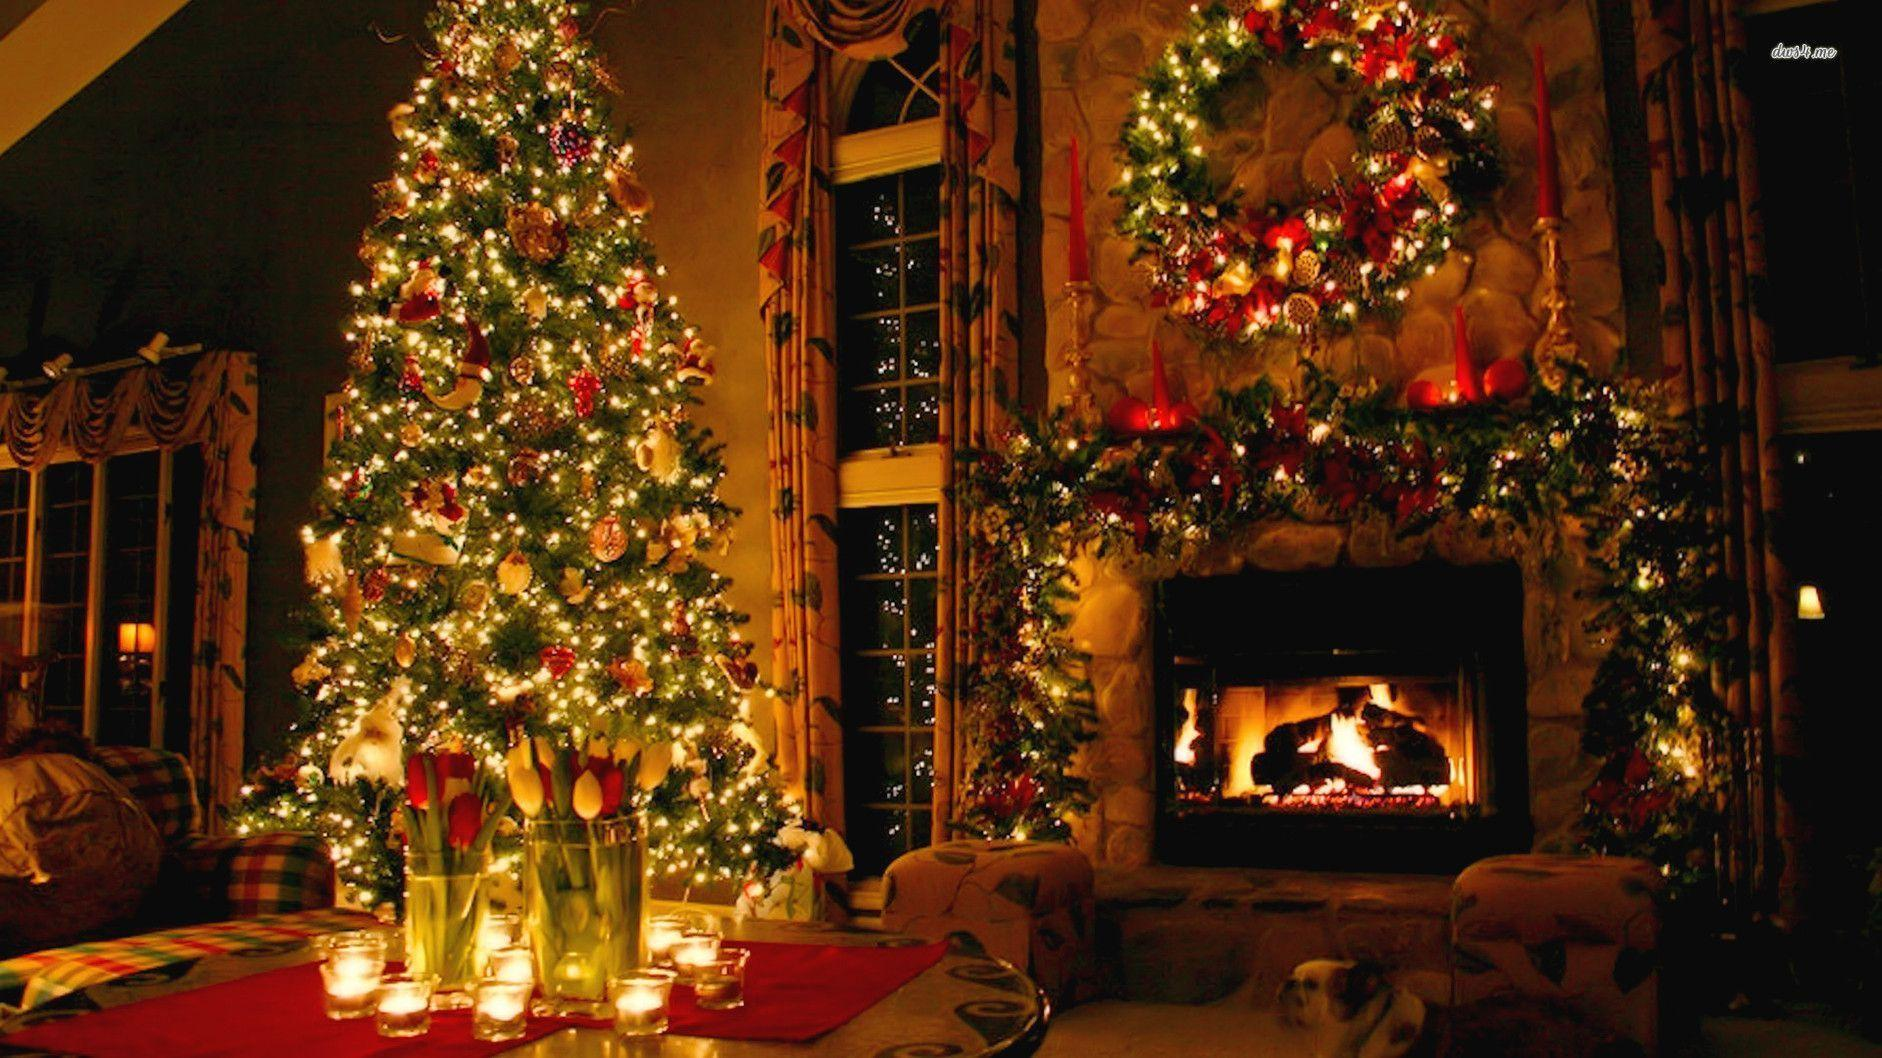 Christmas fireplace backgrounds wallpaper cave for Christmas home decorations pictures